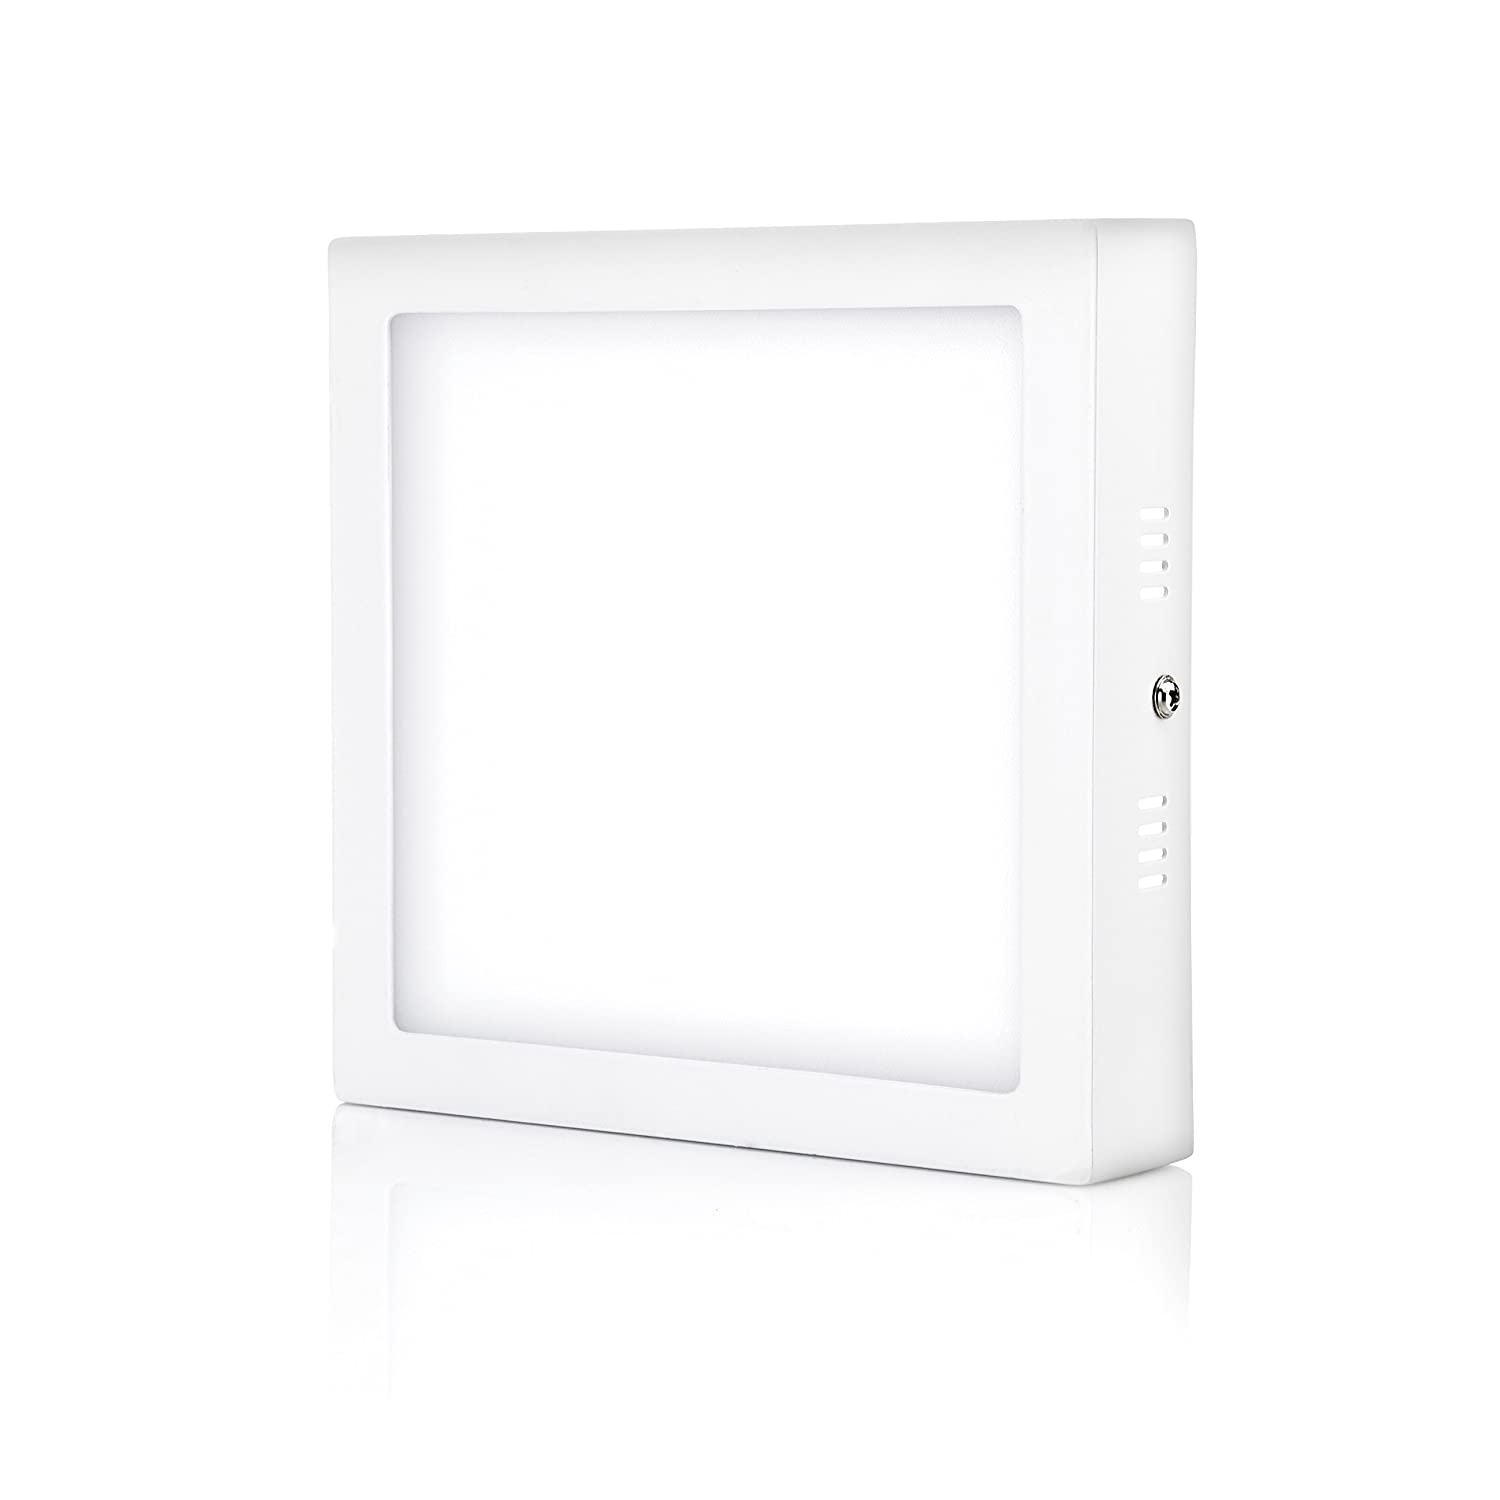 Hyperikon LED Ceiling Light 7 Inch Square, 65 Watt Replacement (15W), Flush Mounth Indoor Lighting, 5000K, Non Dimmable, 4 Pack